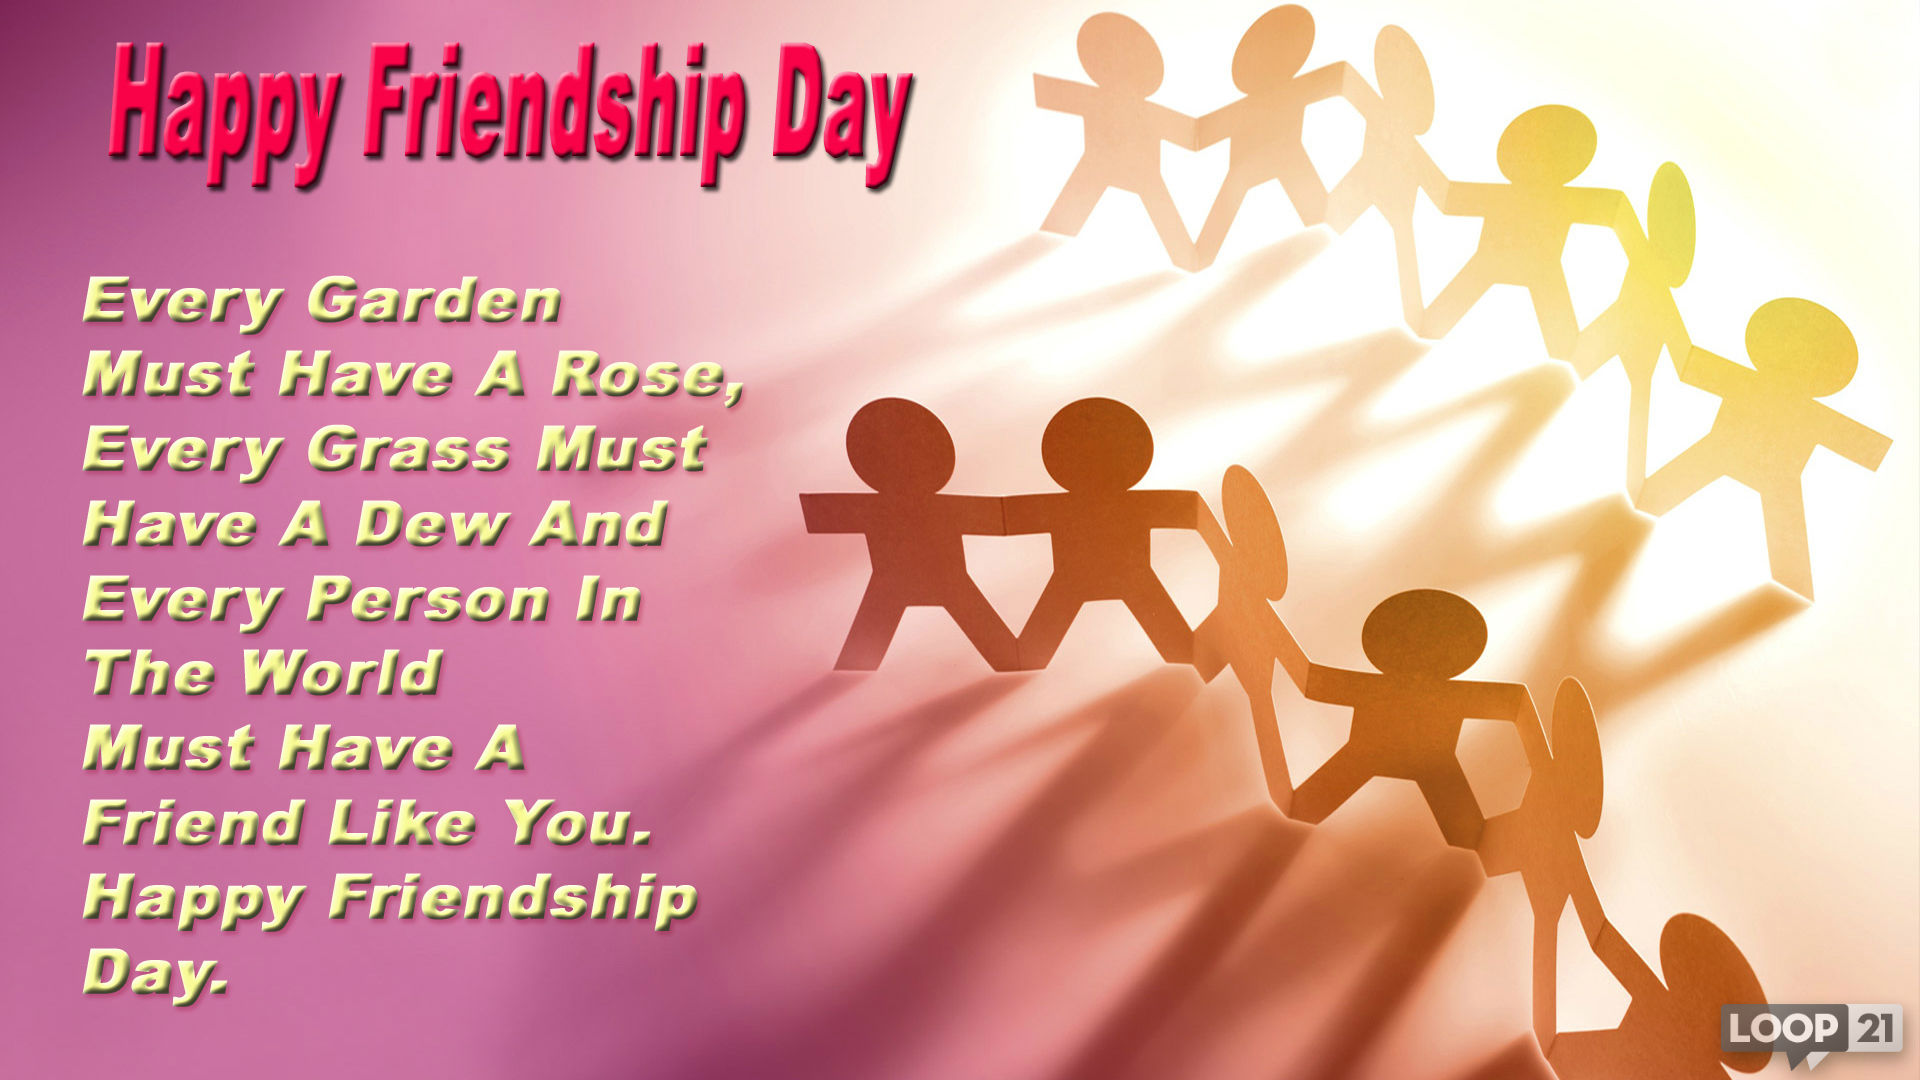 Friendship Day Quotes Friendship Day Quote Pictures, Photos, and Images for Facebook  Friendship Day Quotes